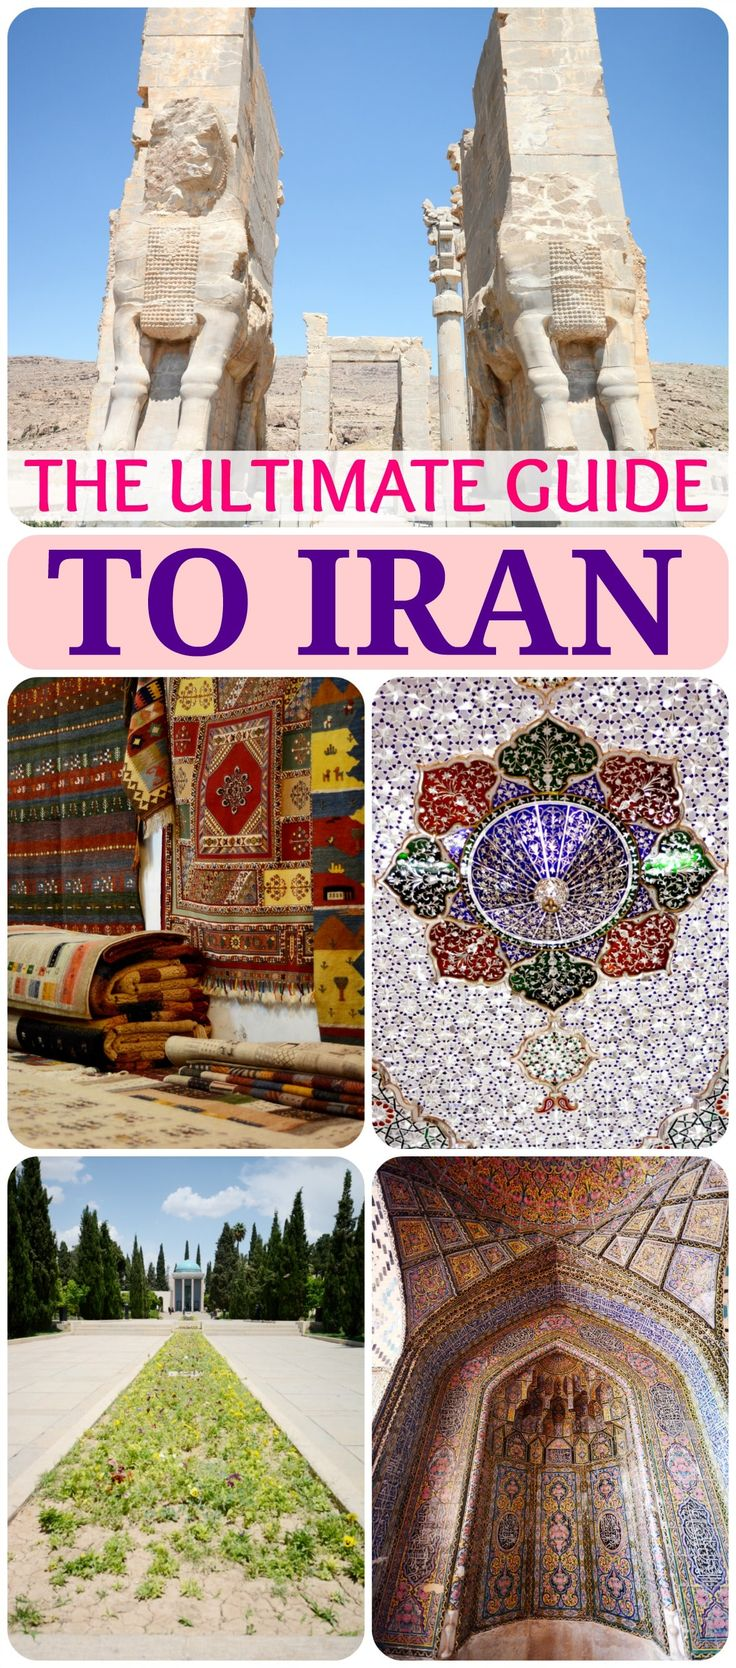 the issues of tourism in iran Travel to iran  updated: august 2018 constant revisions with the help of an authorised tour guide on the ground in tehran, alongside access to regular iran tourism updates via local iranian on the ground and affiliated tourism groups and businesses, ensure that this article remains the most.